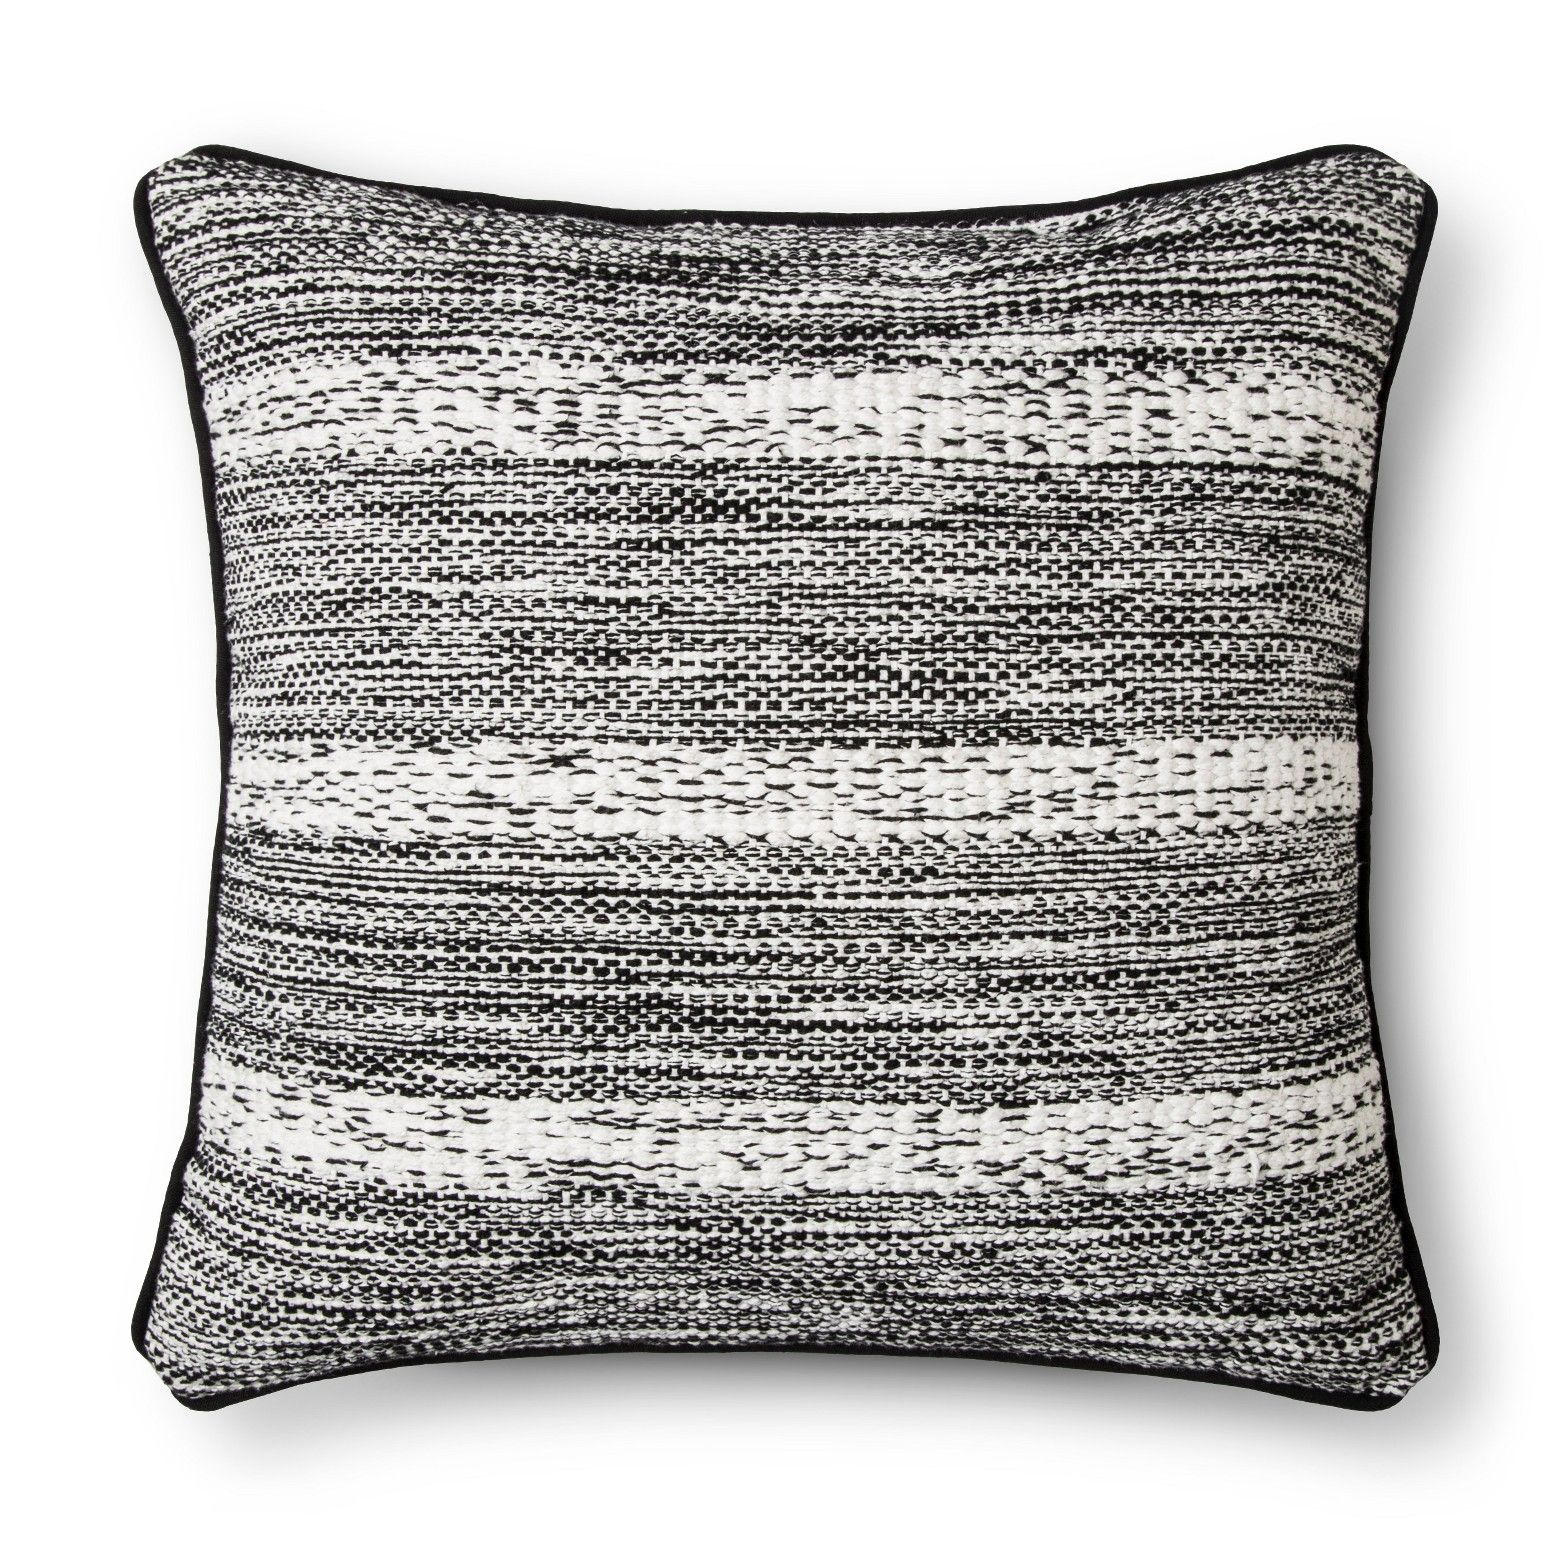 throw pillows cover agreeable woven texture of vintage chic pillow rustic